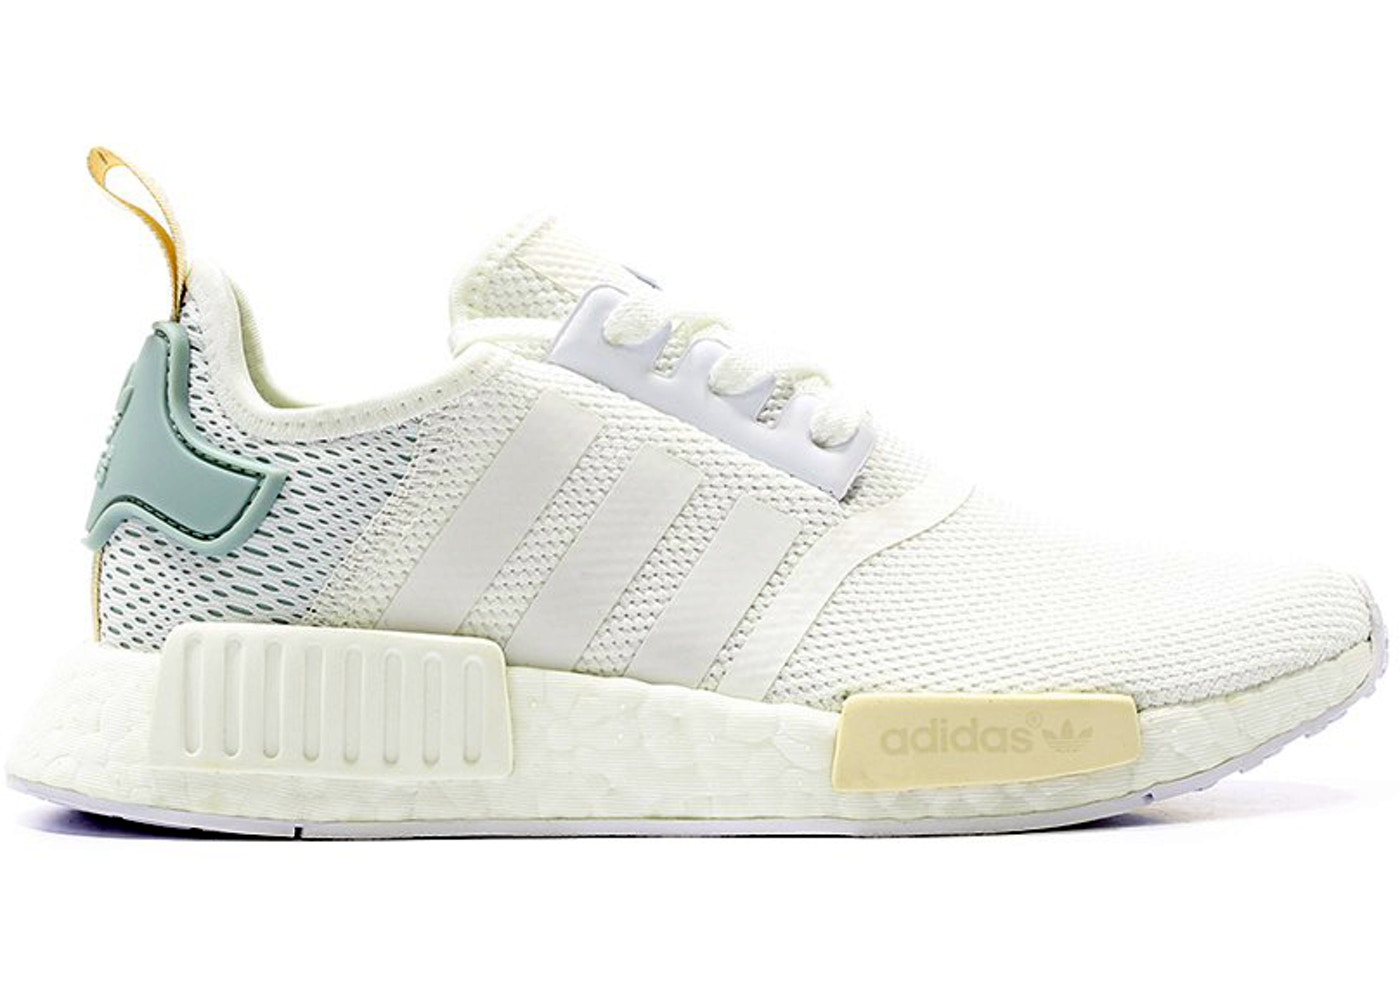 Adidas RMD R1 W white tactile green | Chaussures | Chaussure